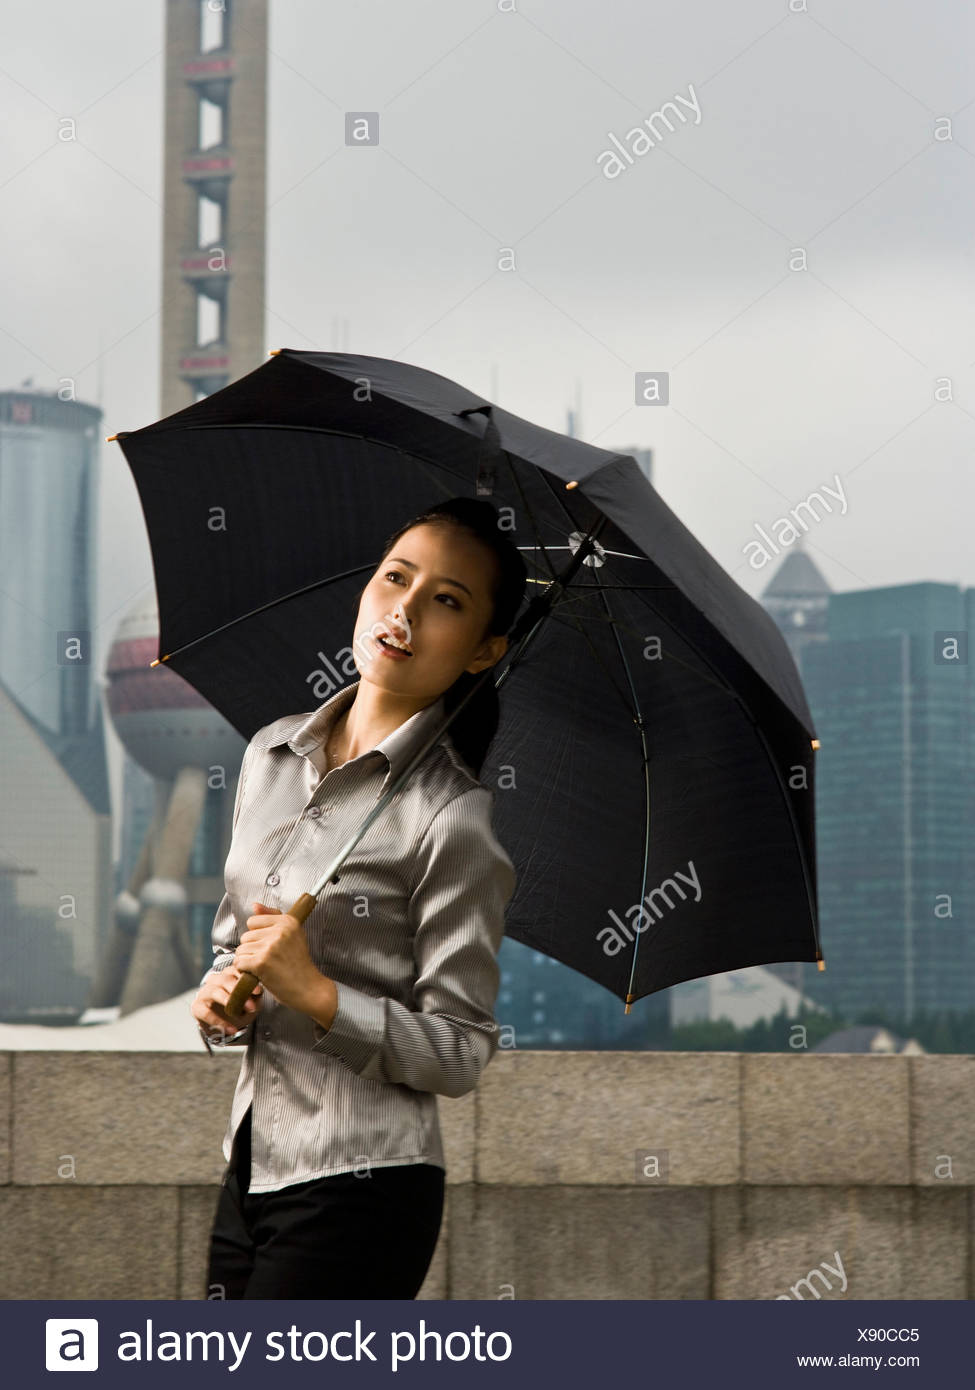 Young woman under an umbrella. - Stock Image